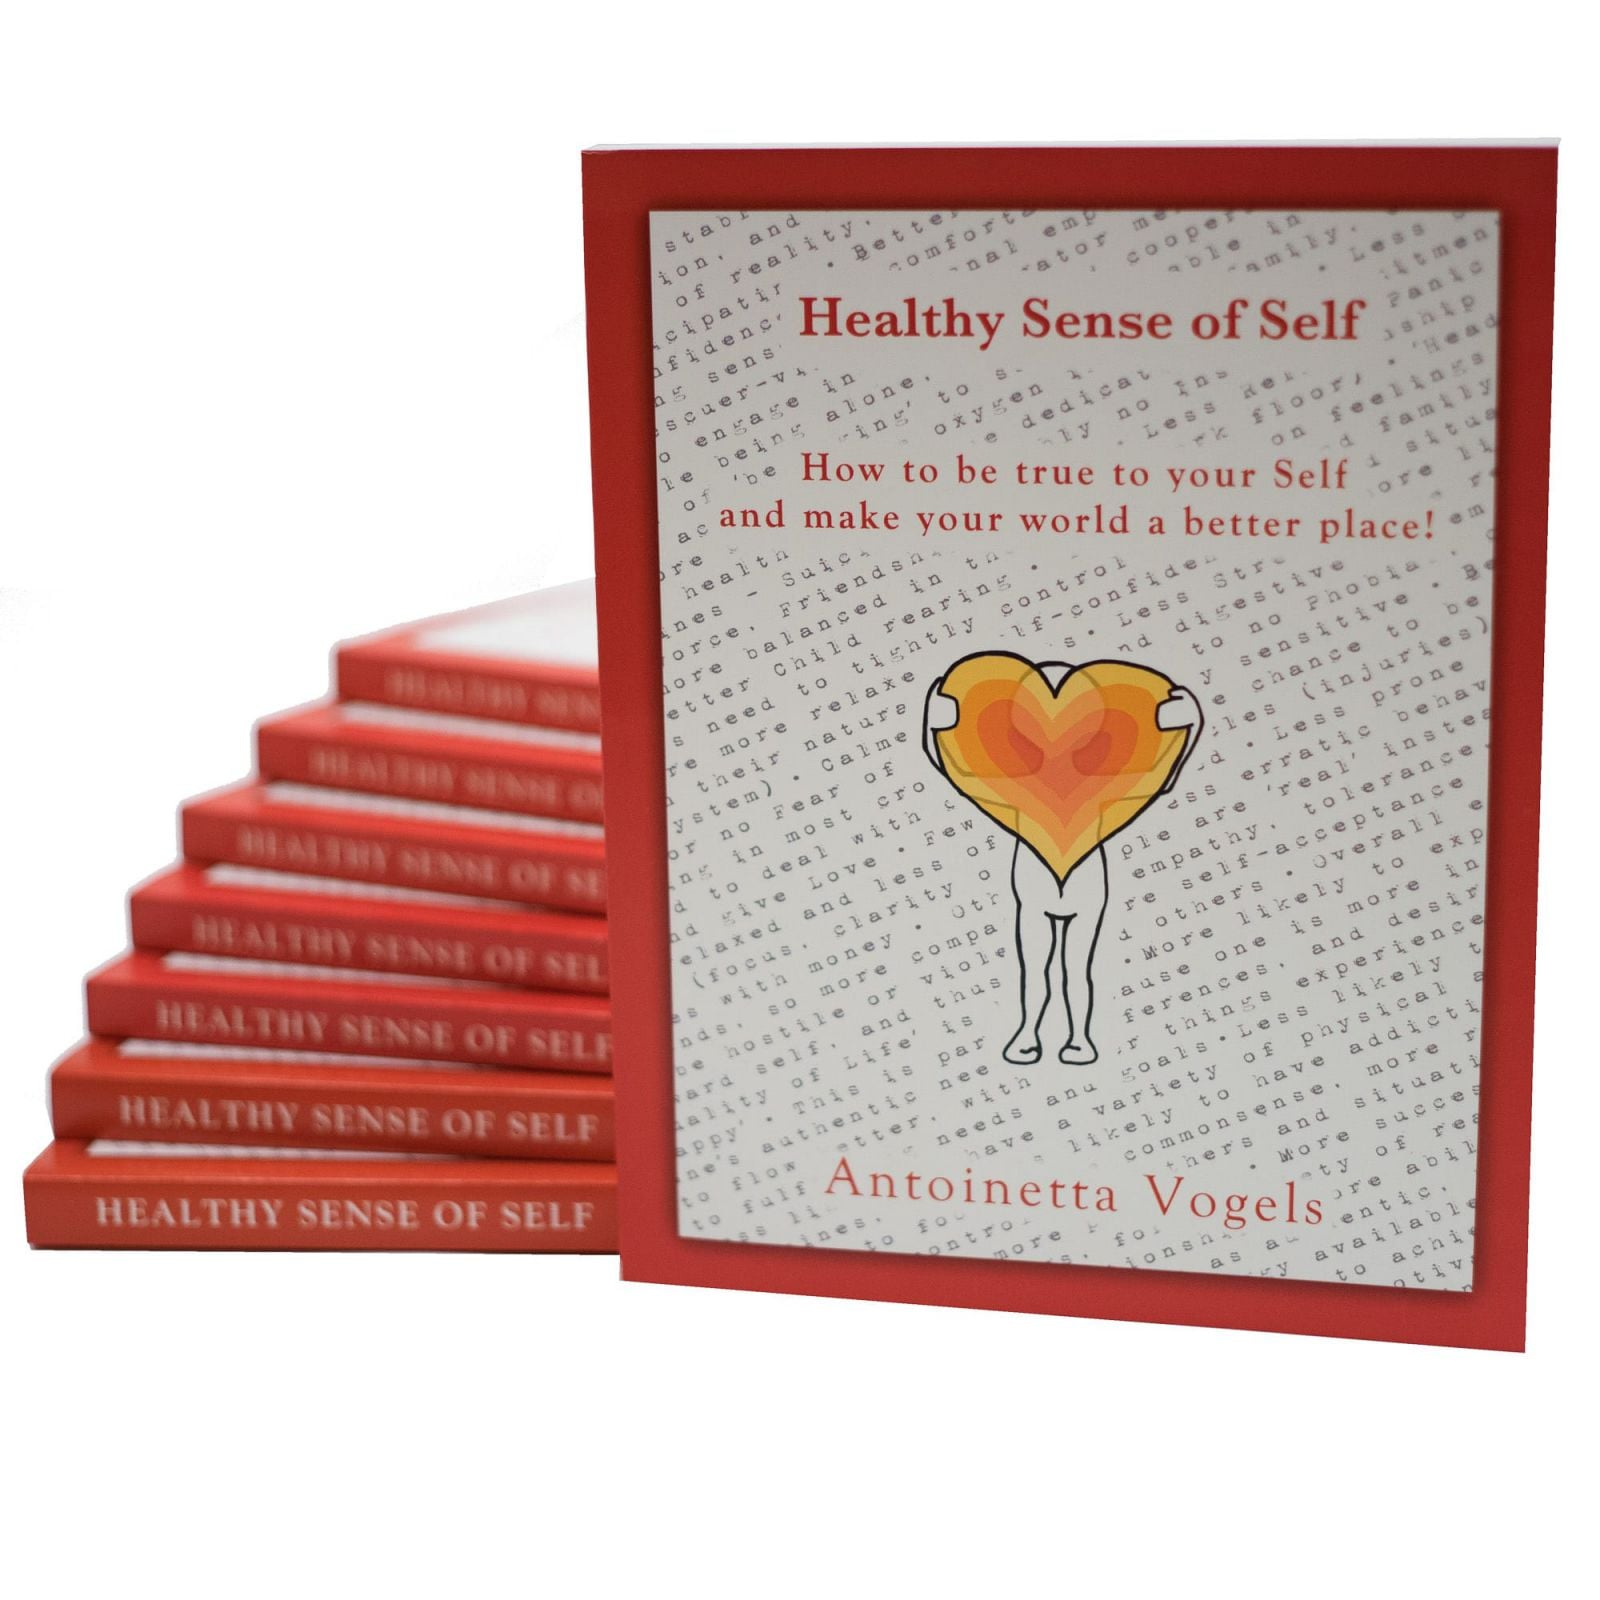 hysos-product-book-healthy-sense-of-self-big-book